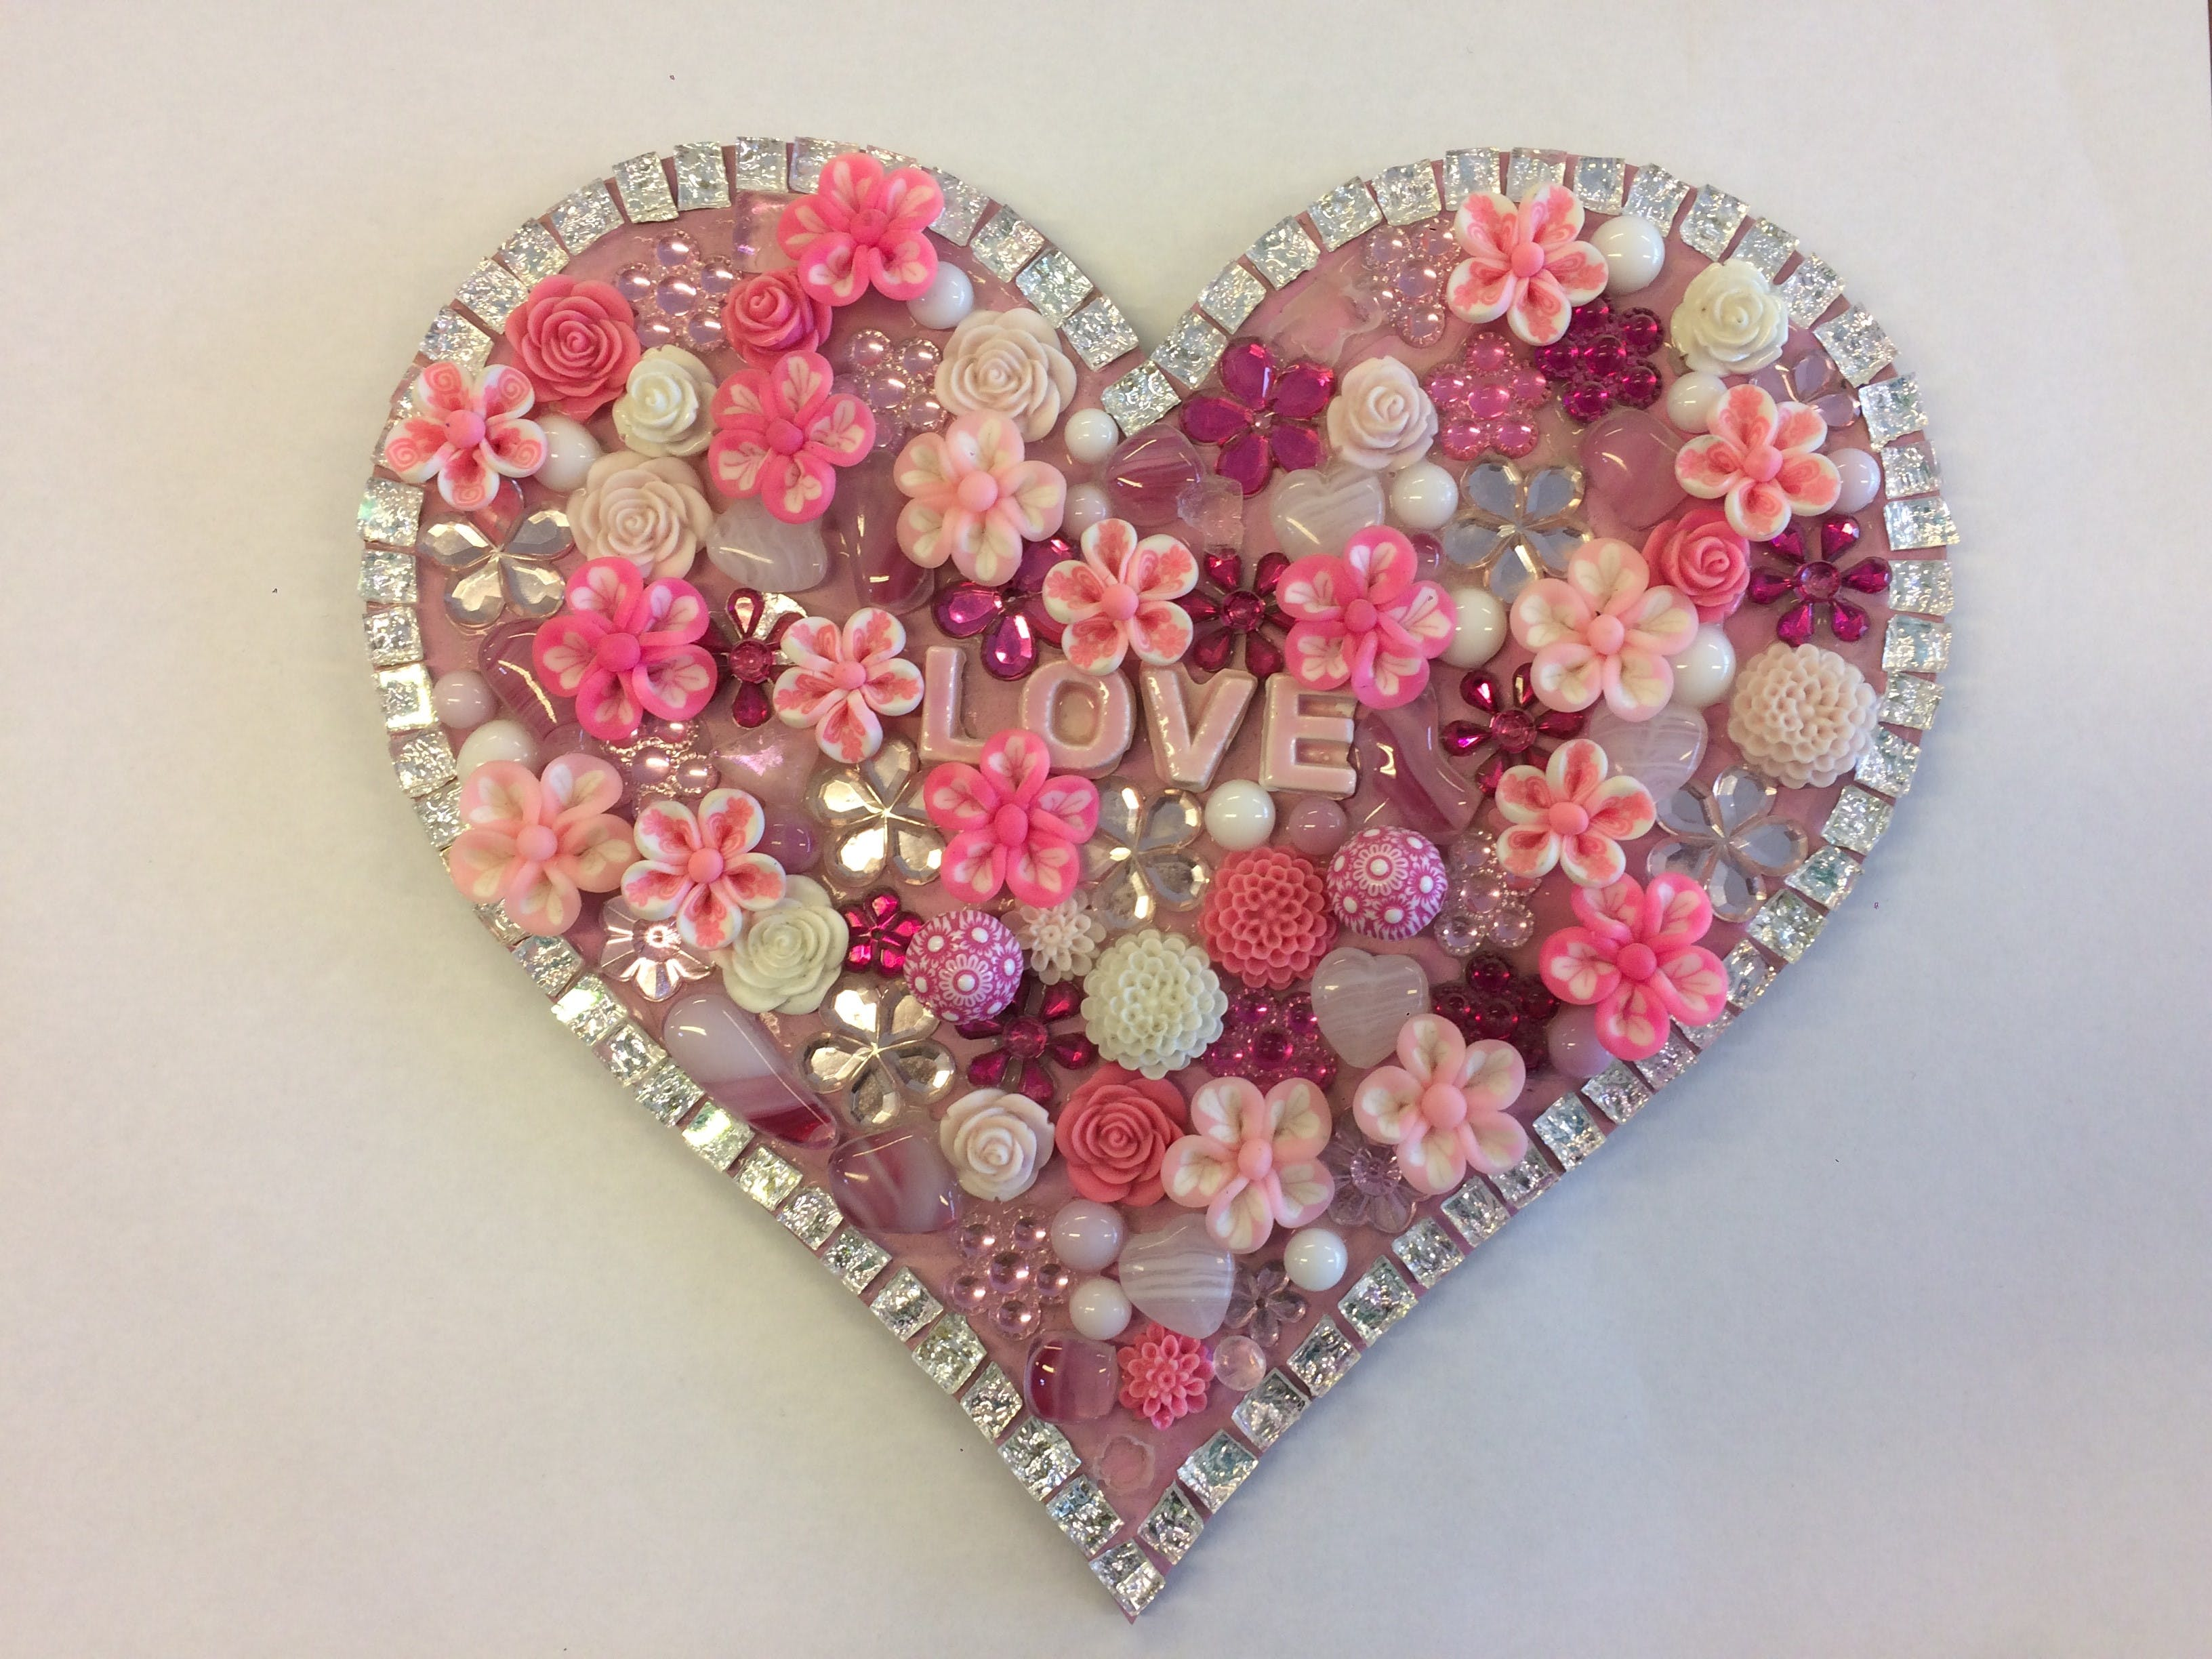 Flowers and Bling Mosaic Class for Kids - Restaurant Find